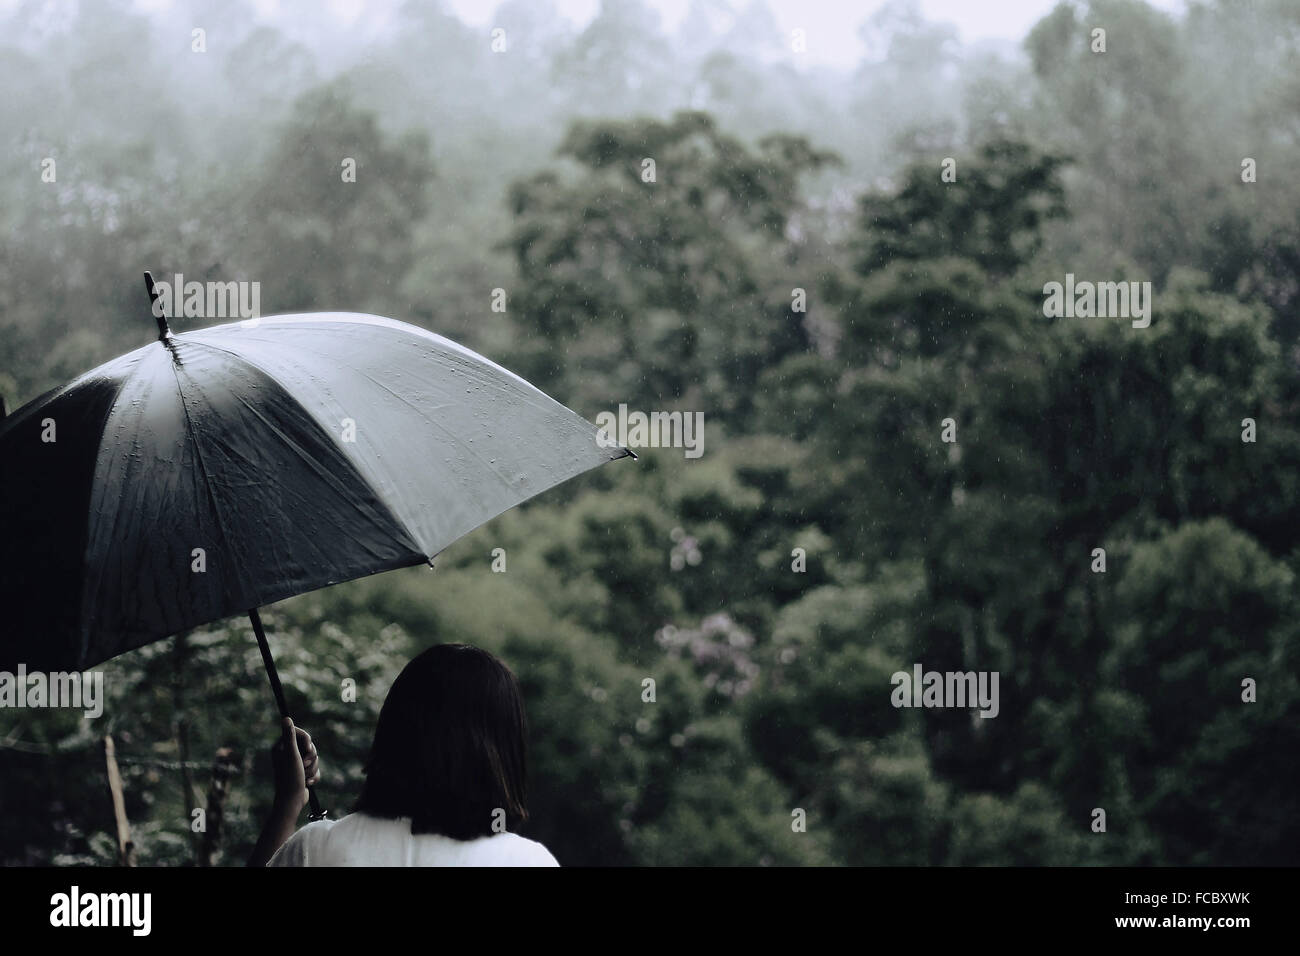 Rear View Of Woman With Umbrella With Trees In Background - Stock Image